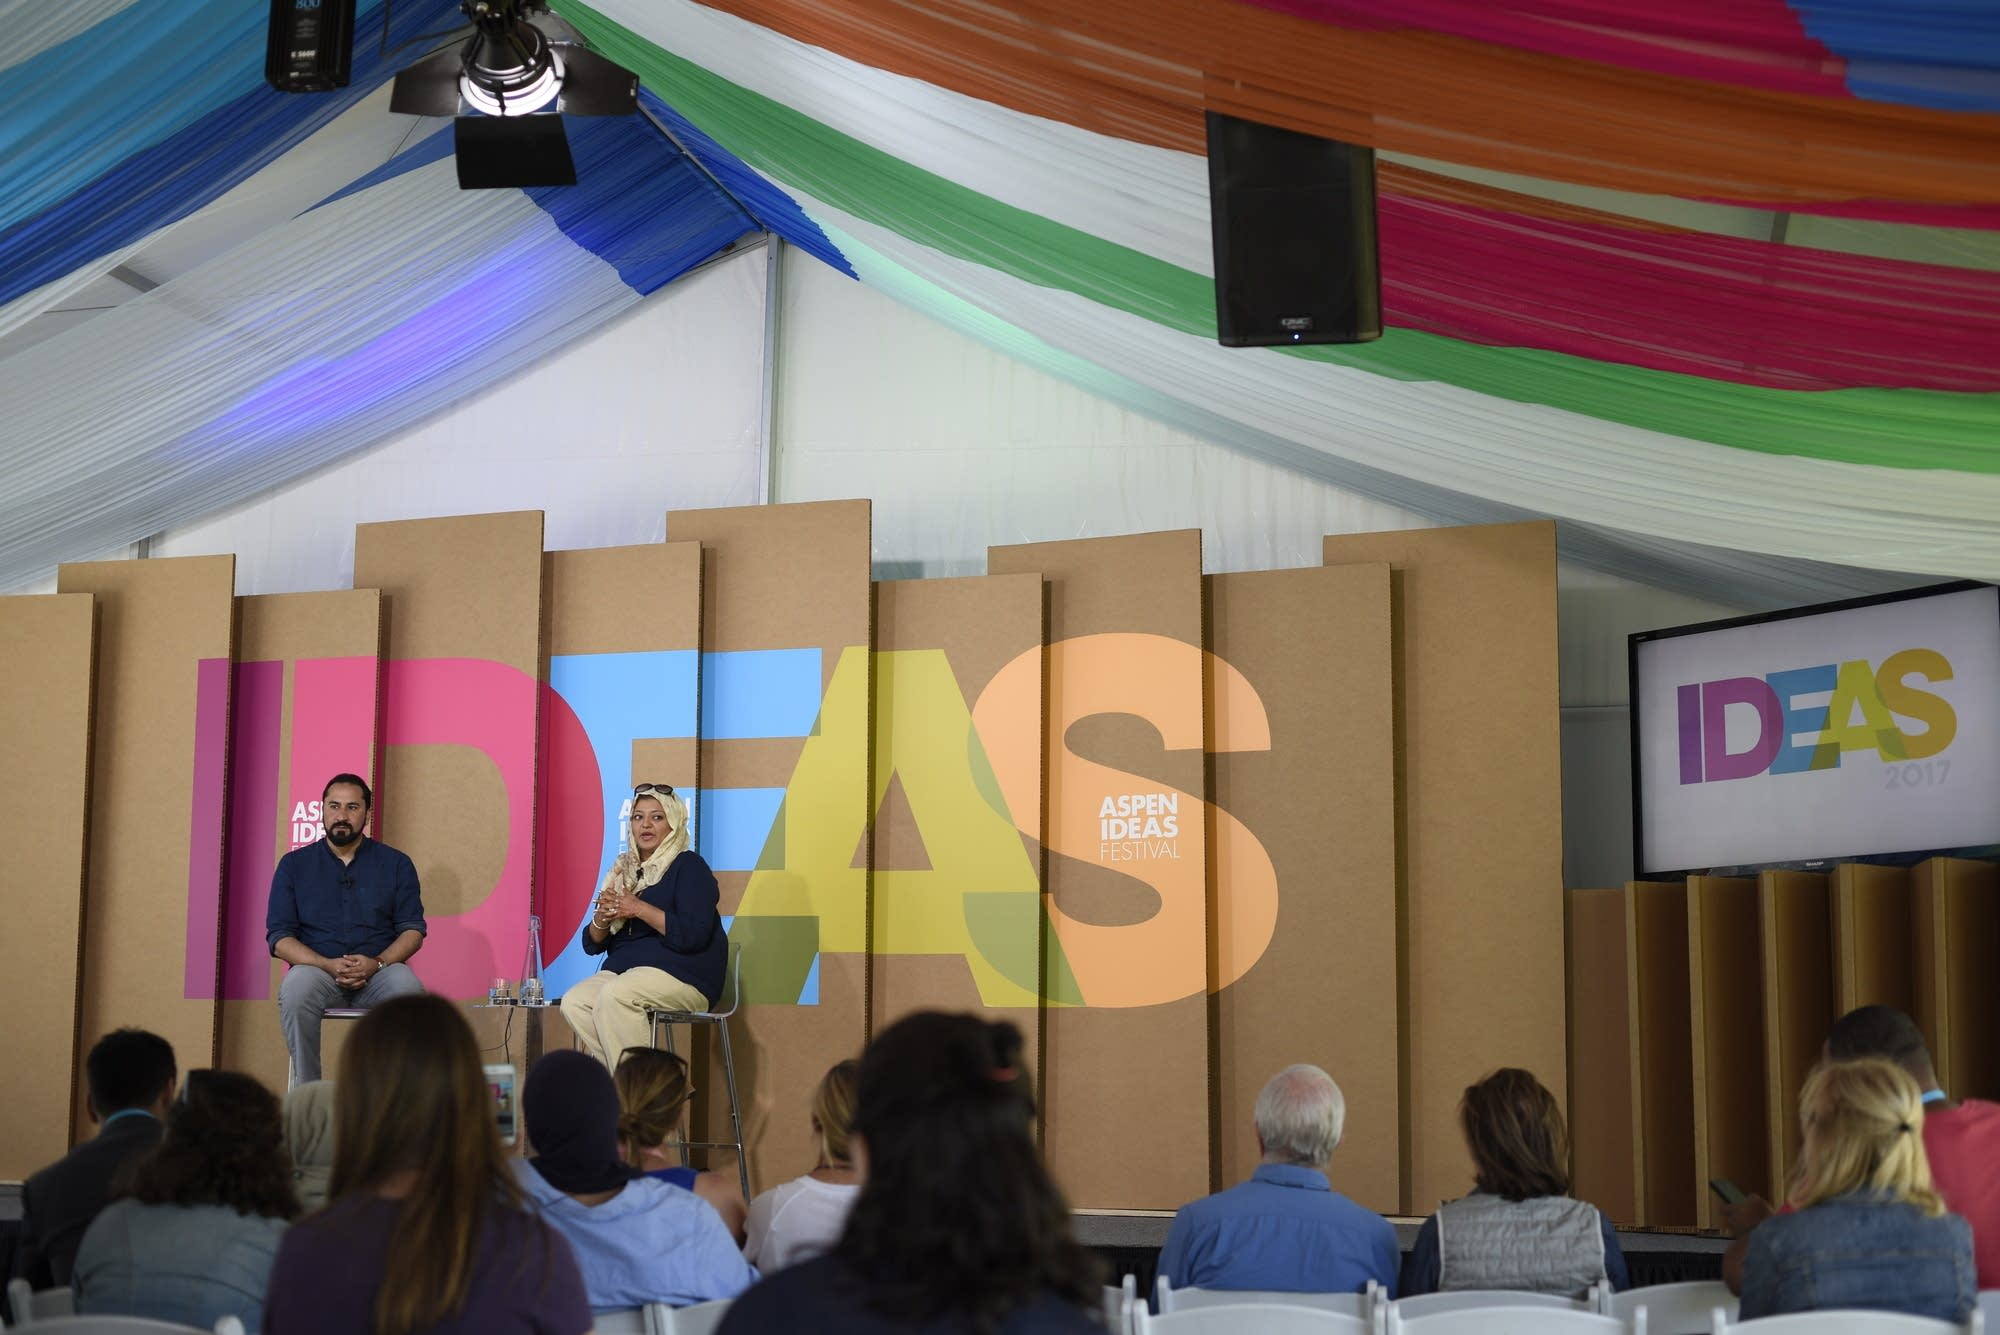 Rabia Chaudry and Haris Tarin at the 2017 Aspen Ideas Festival.